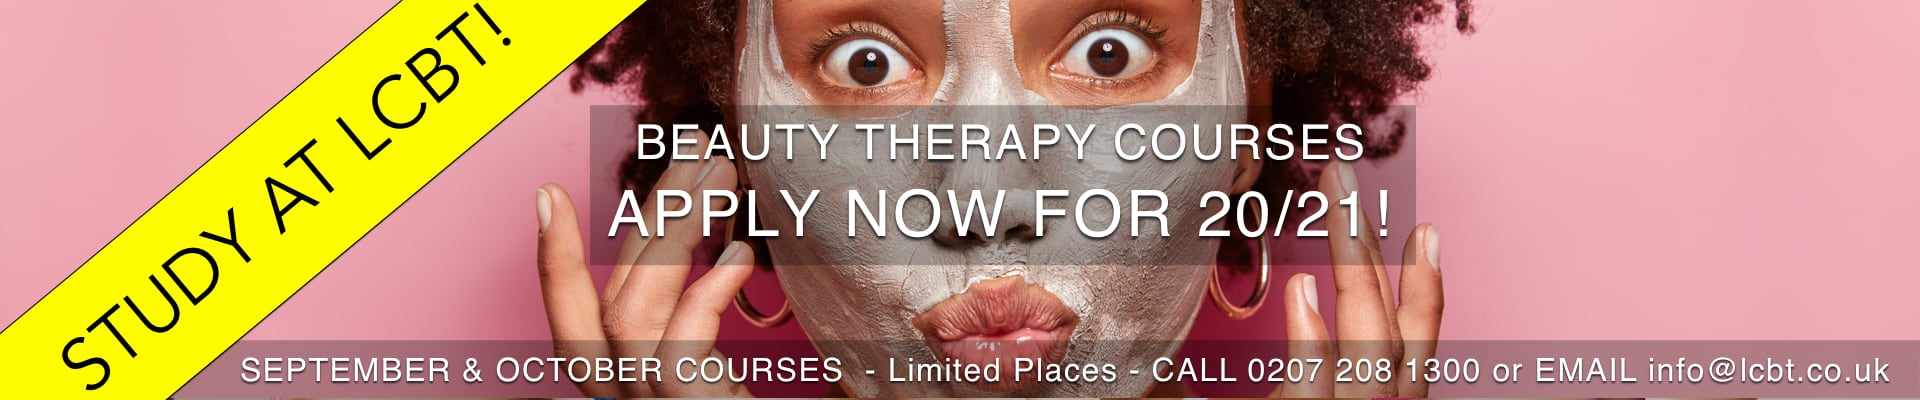 LCBT Beauty Therapy Courses released for September 2020 - Apply Now!